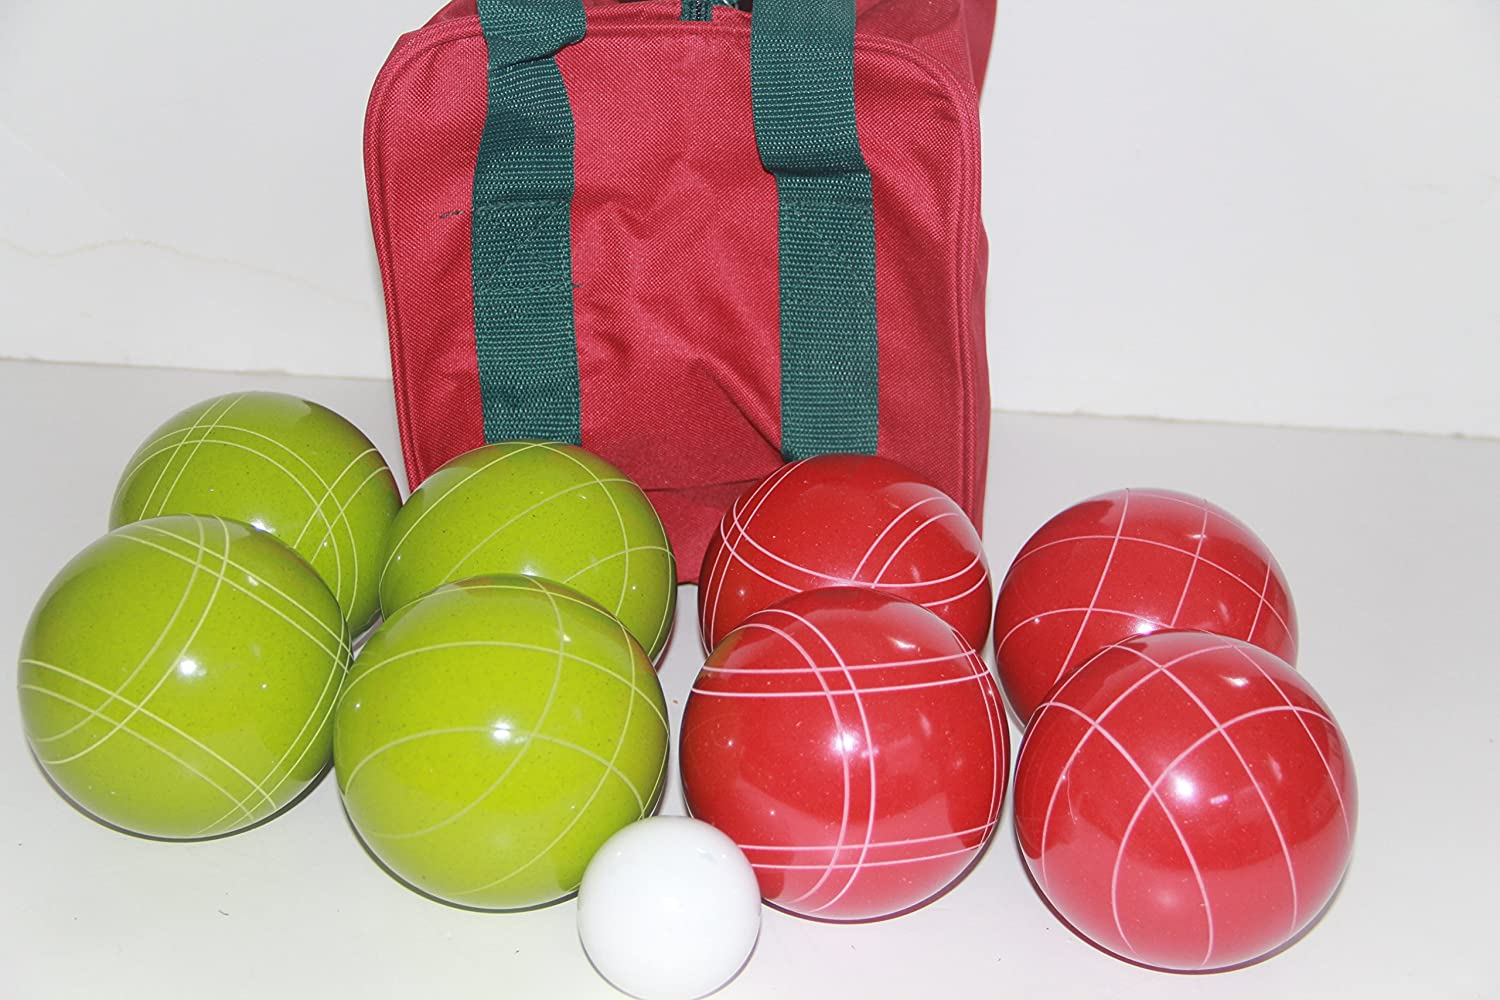 Premium Quality and Italian/American Made, 110mm EPCO Bocce Set - Rustic Green/Red Balls and Maroon/Green Bag